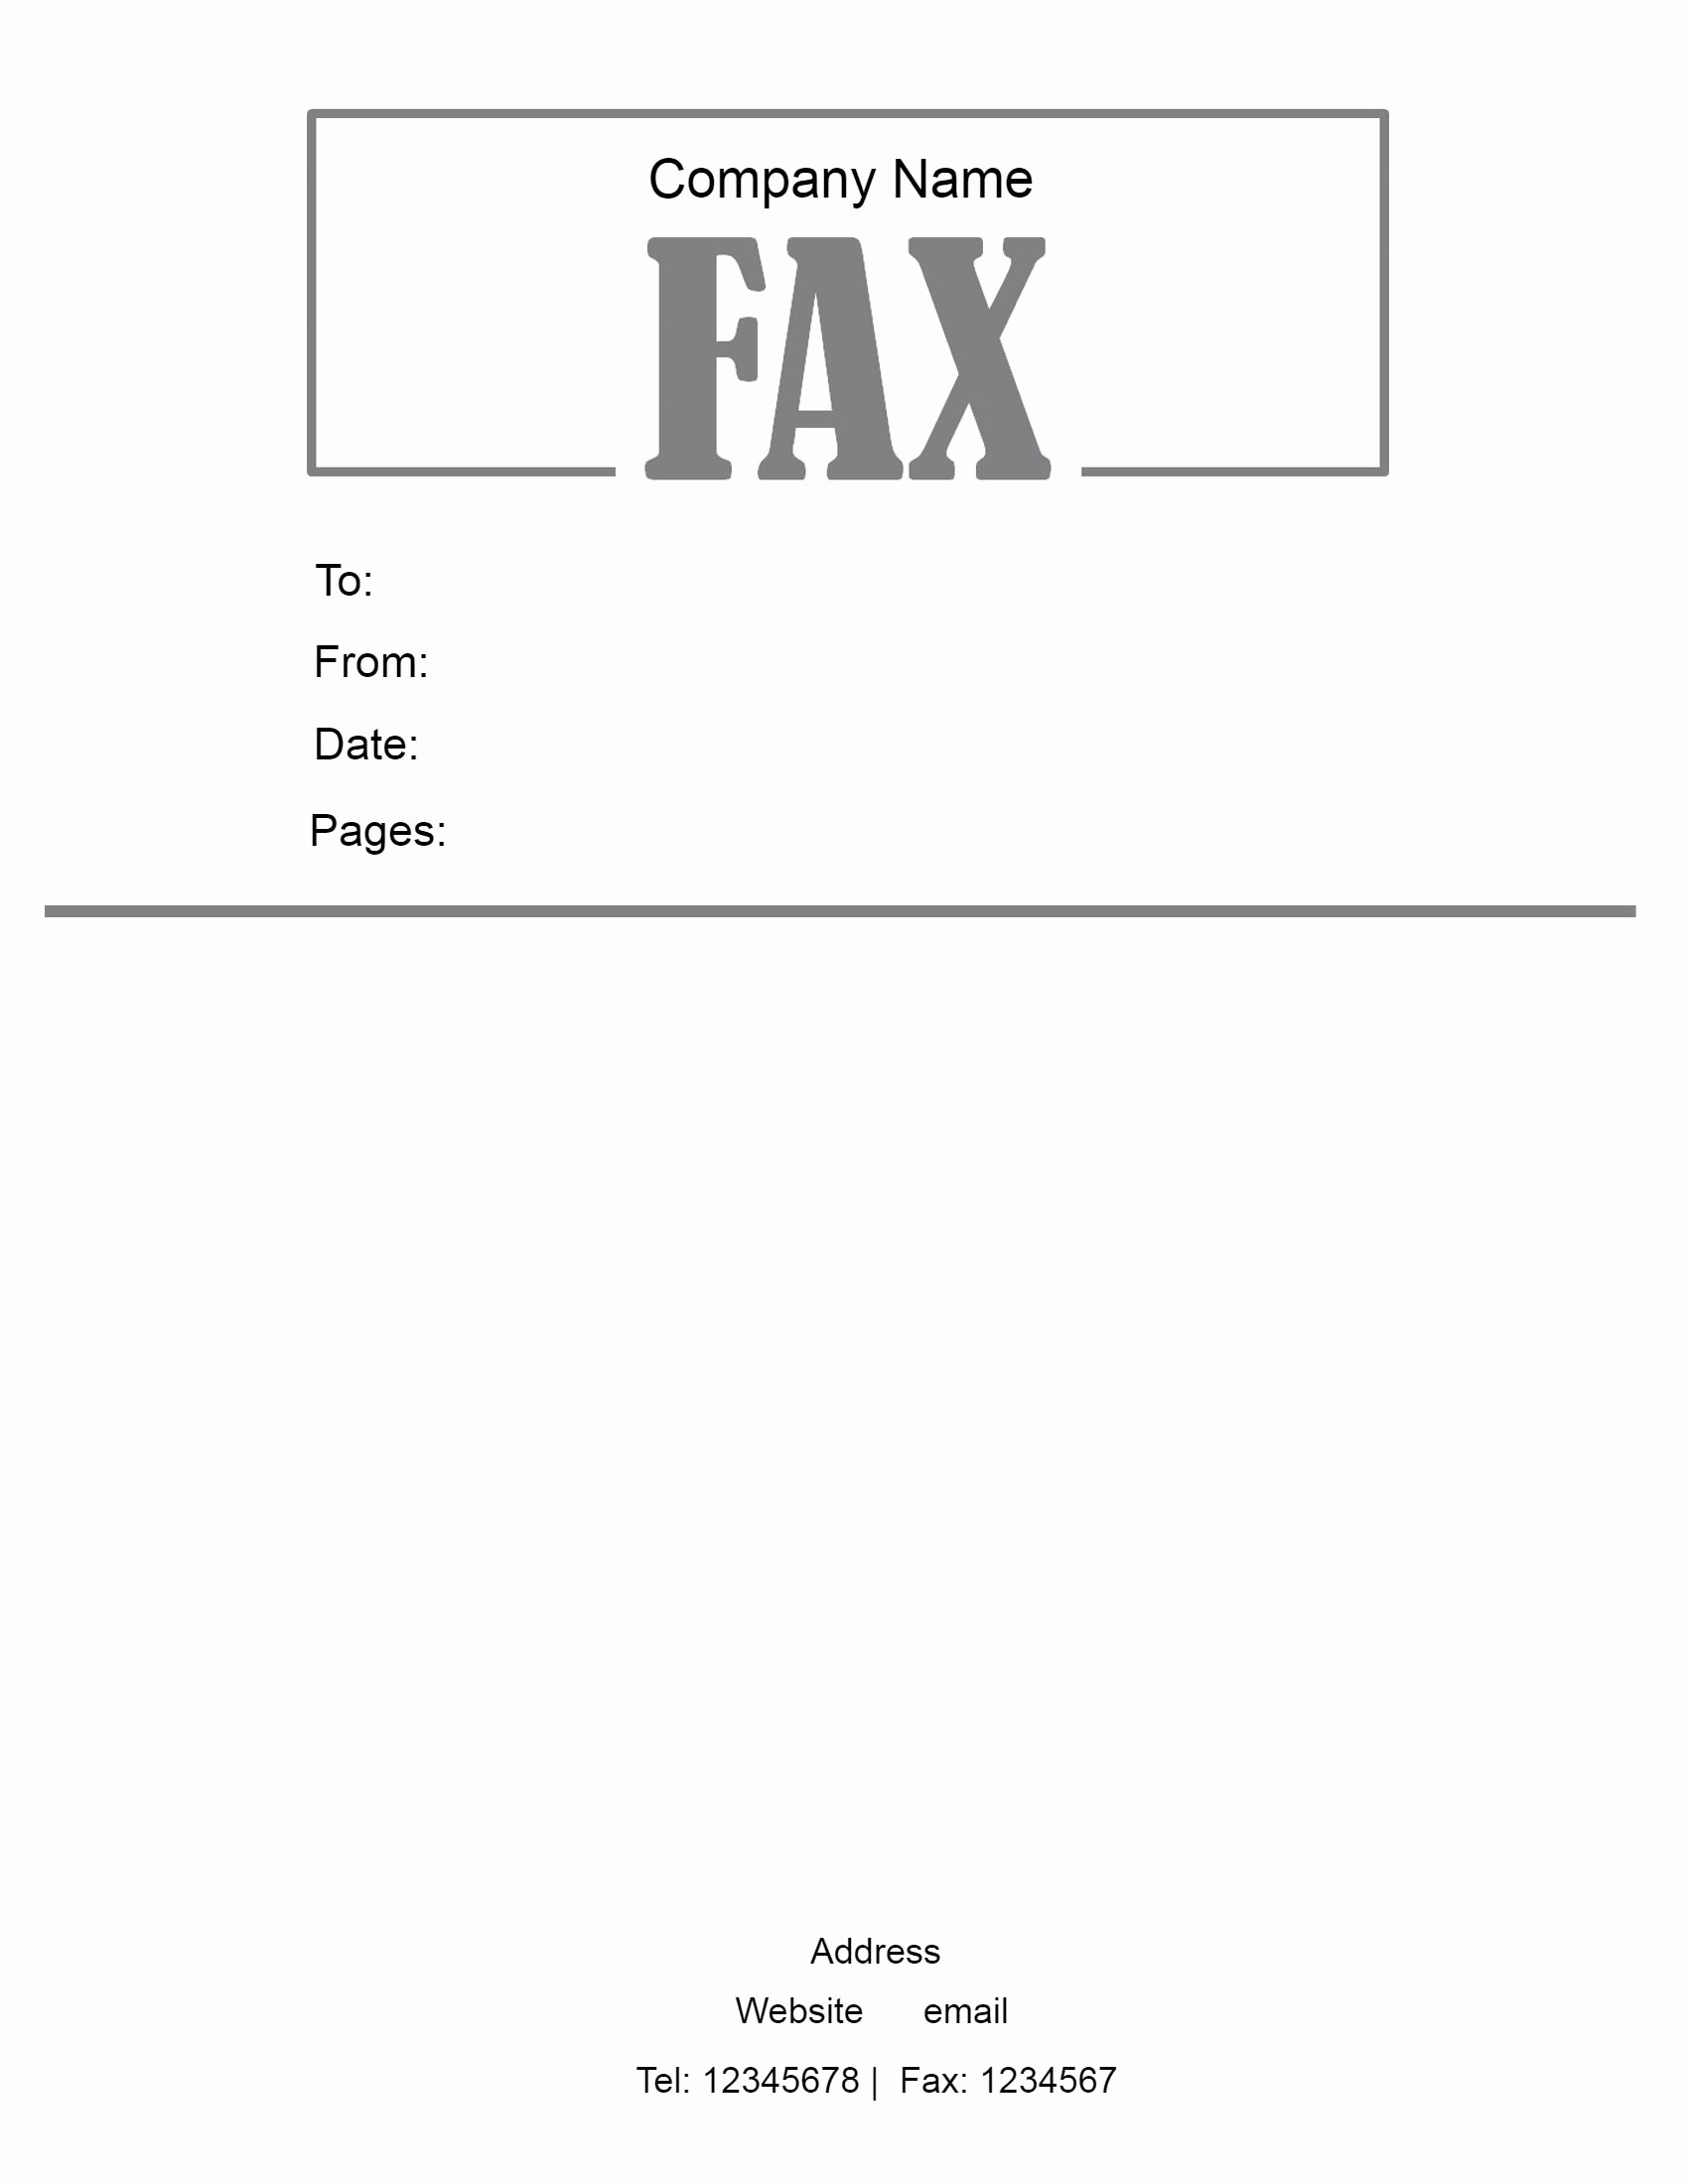 Professional Fax Cover Sheet Pdf Unique Free Fax Cover Letter Template